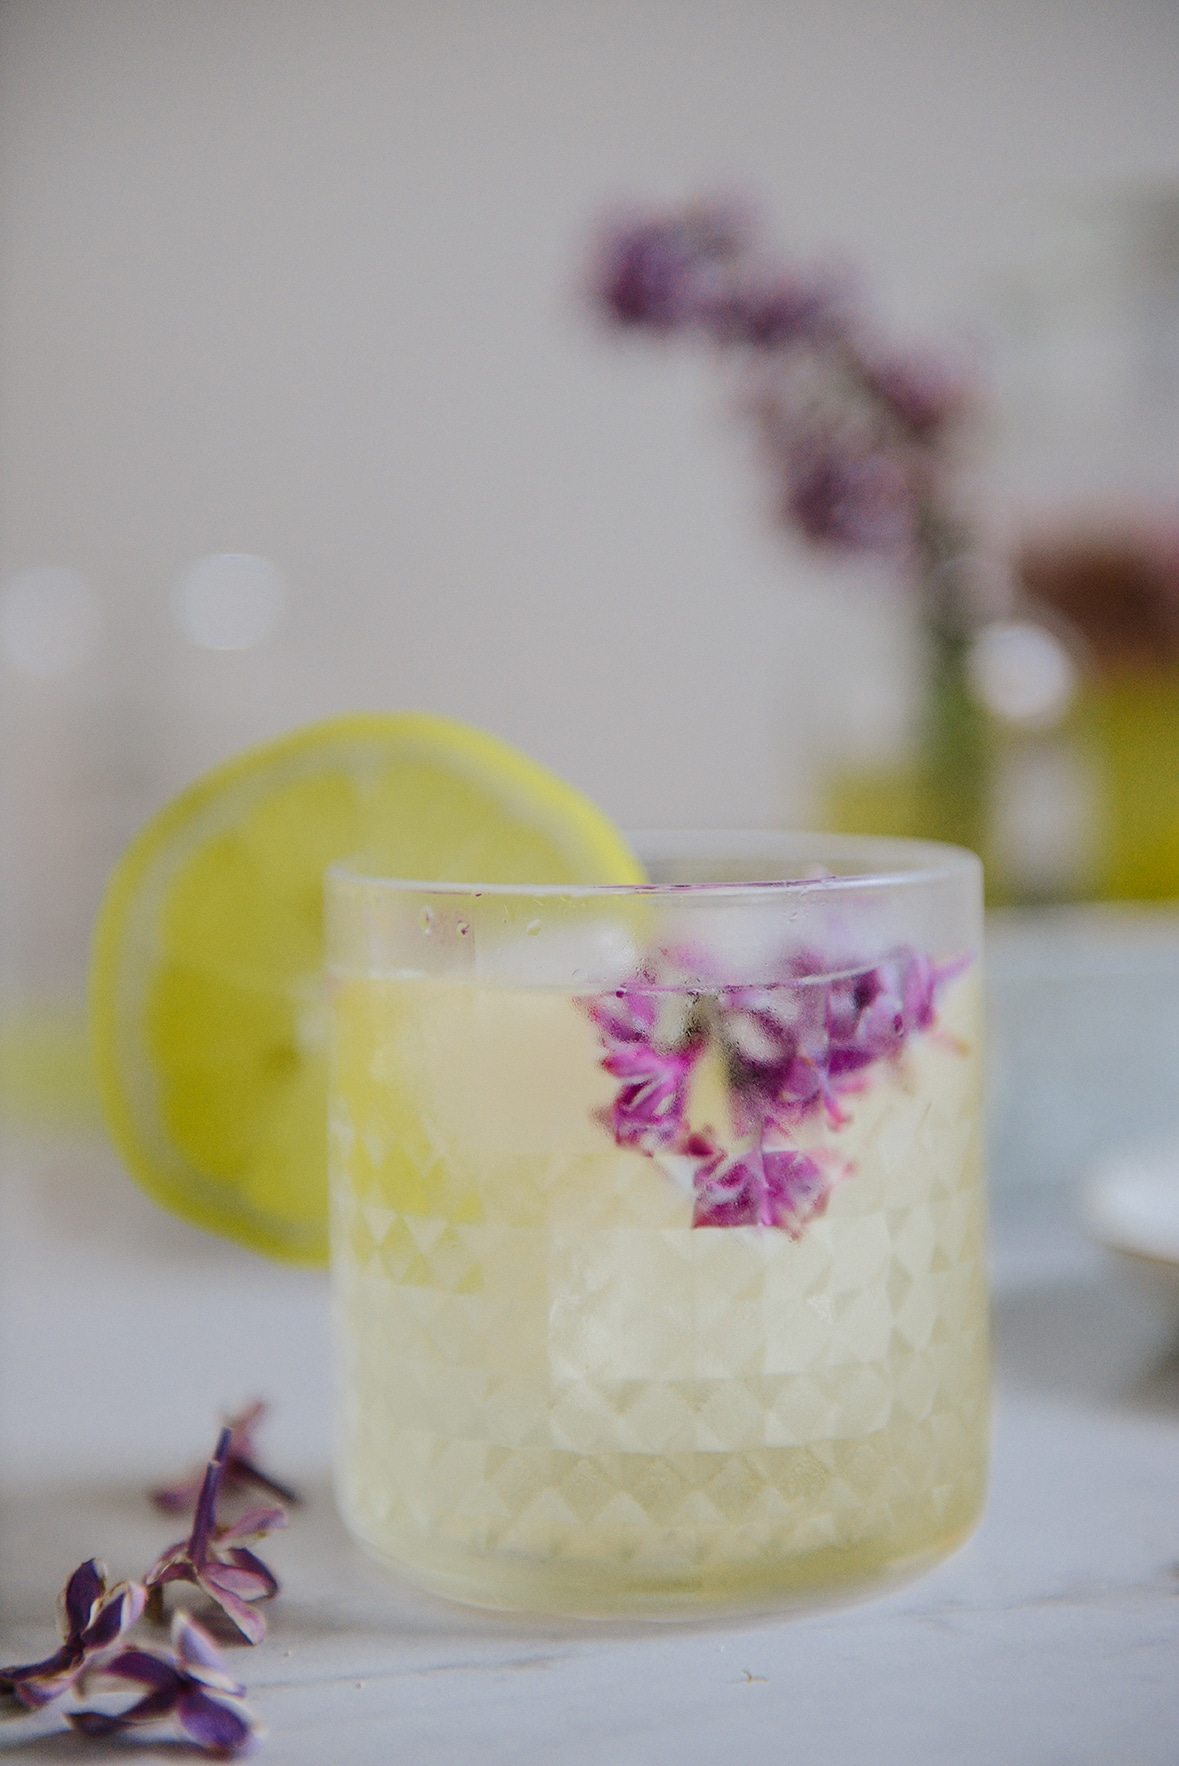 Fermented Honey Lilac Drink for Allergy Season // www.HealthyishFoods.com